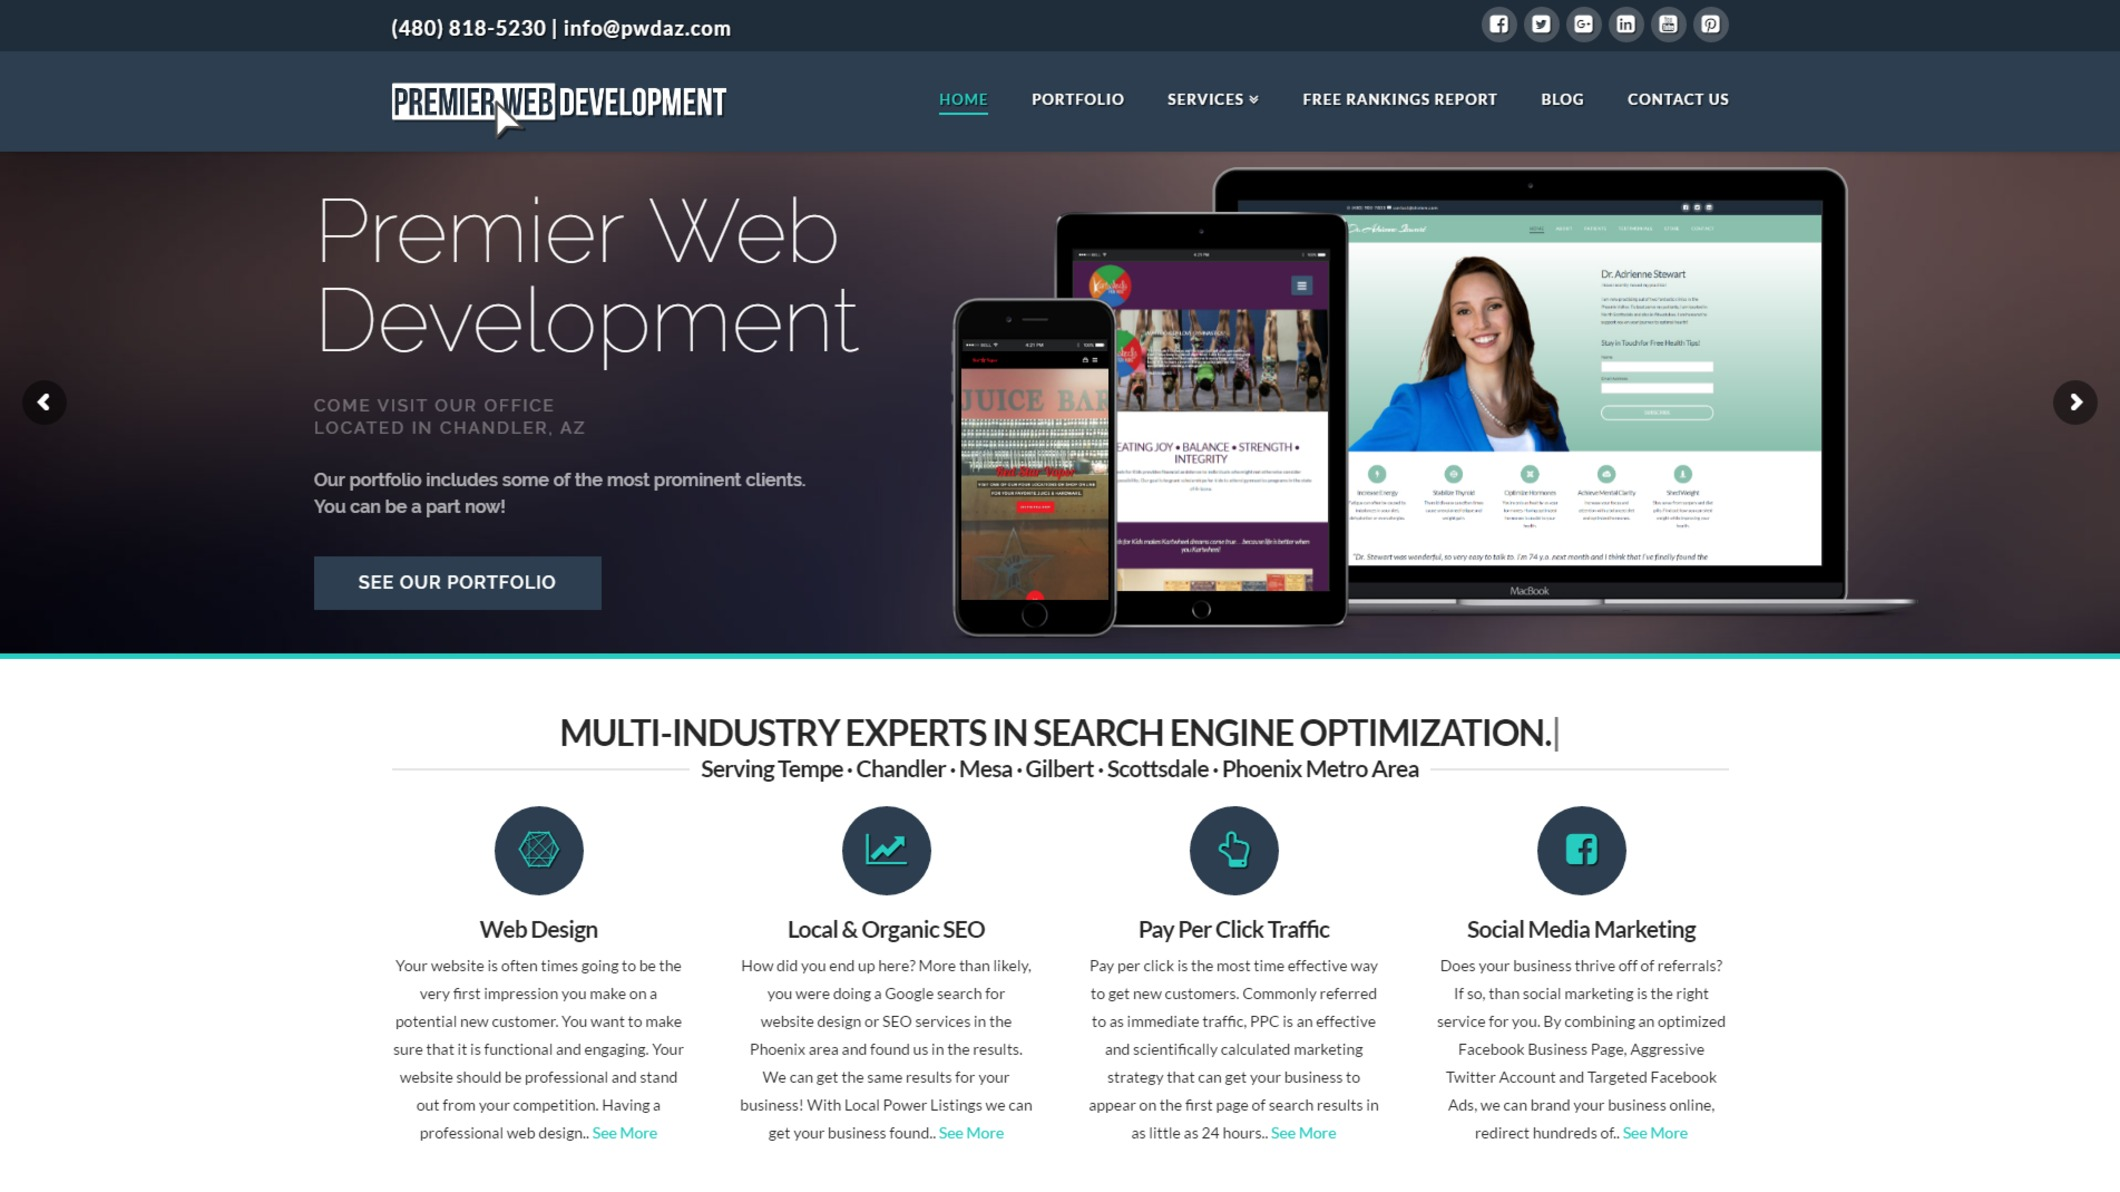 Premier Web Development In Chandler, Az 85225. Business Object Reports Window Treatments Nyc. Diabetic Food Log Template Maryland Drug Laws. Stabbing Lower Back Pain Safe Auto Commercial. Military Nursing School Local Criminal Lawyers. Send Large Files For Free Svn Version Control. Utah First Time Home Buyer Programs. Best Homeowners Insurance Companies. Google Phone Operating System